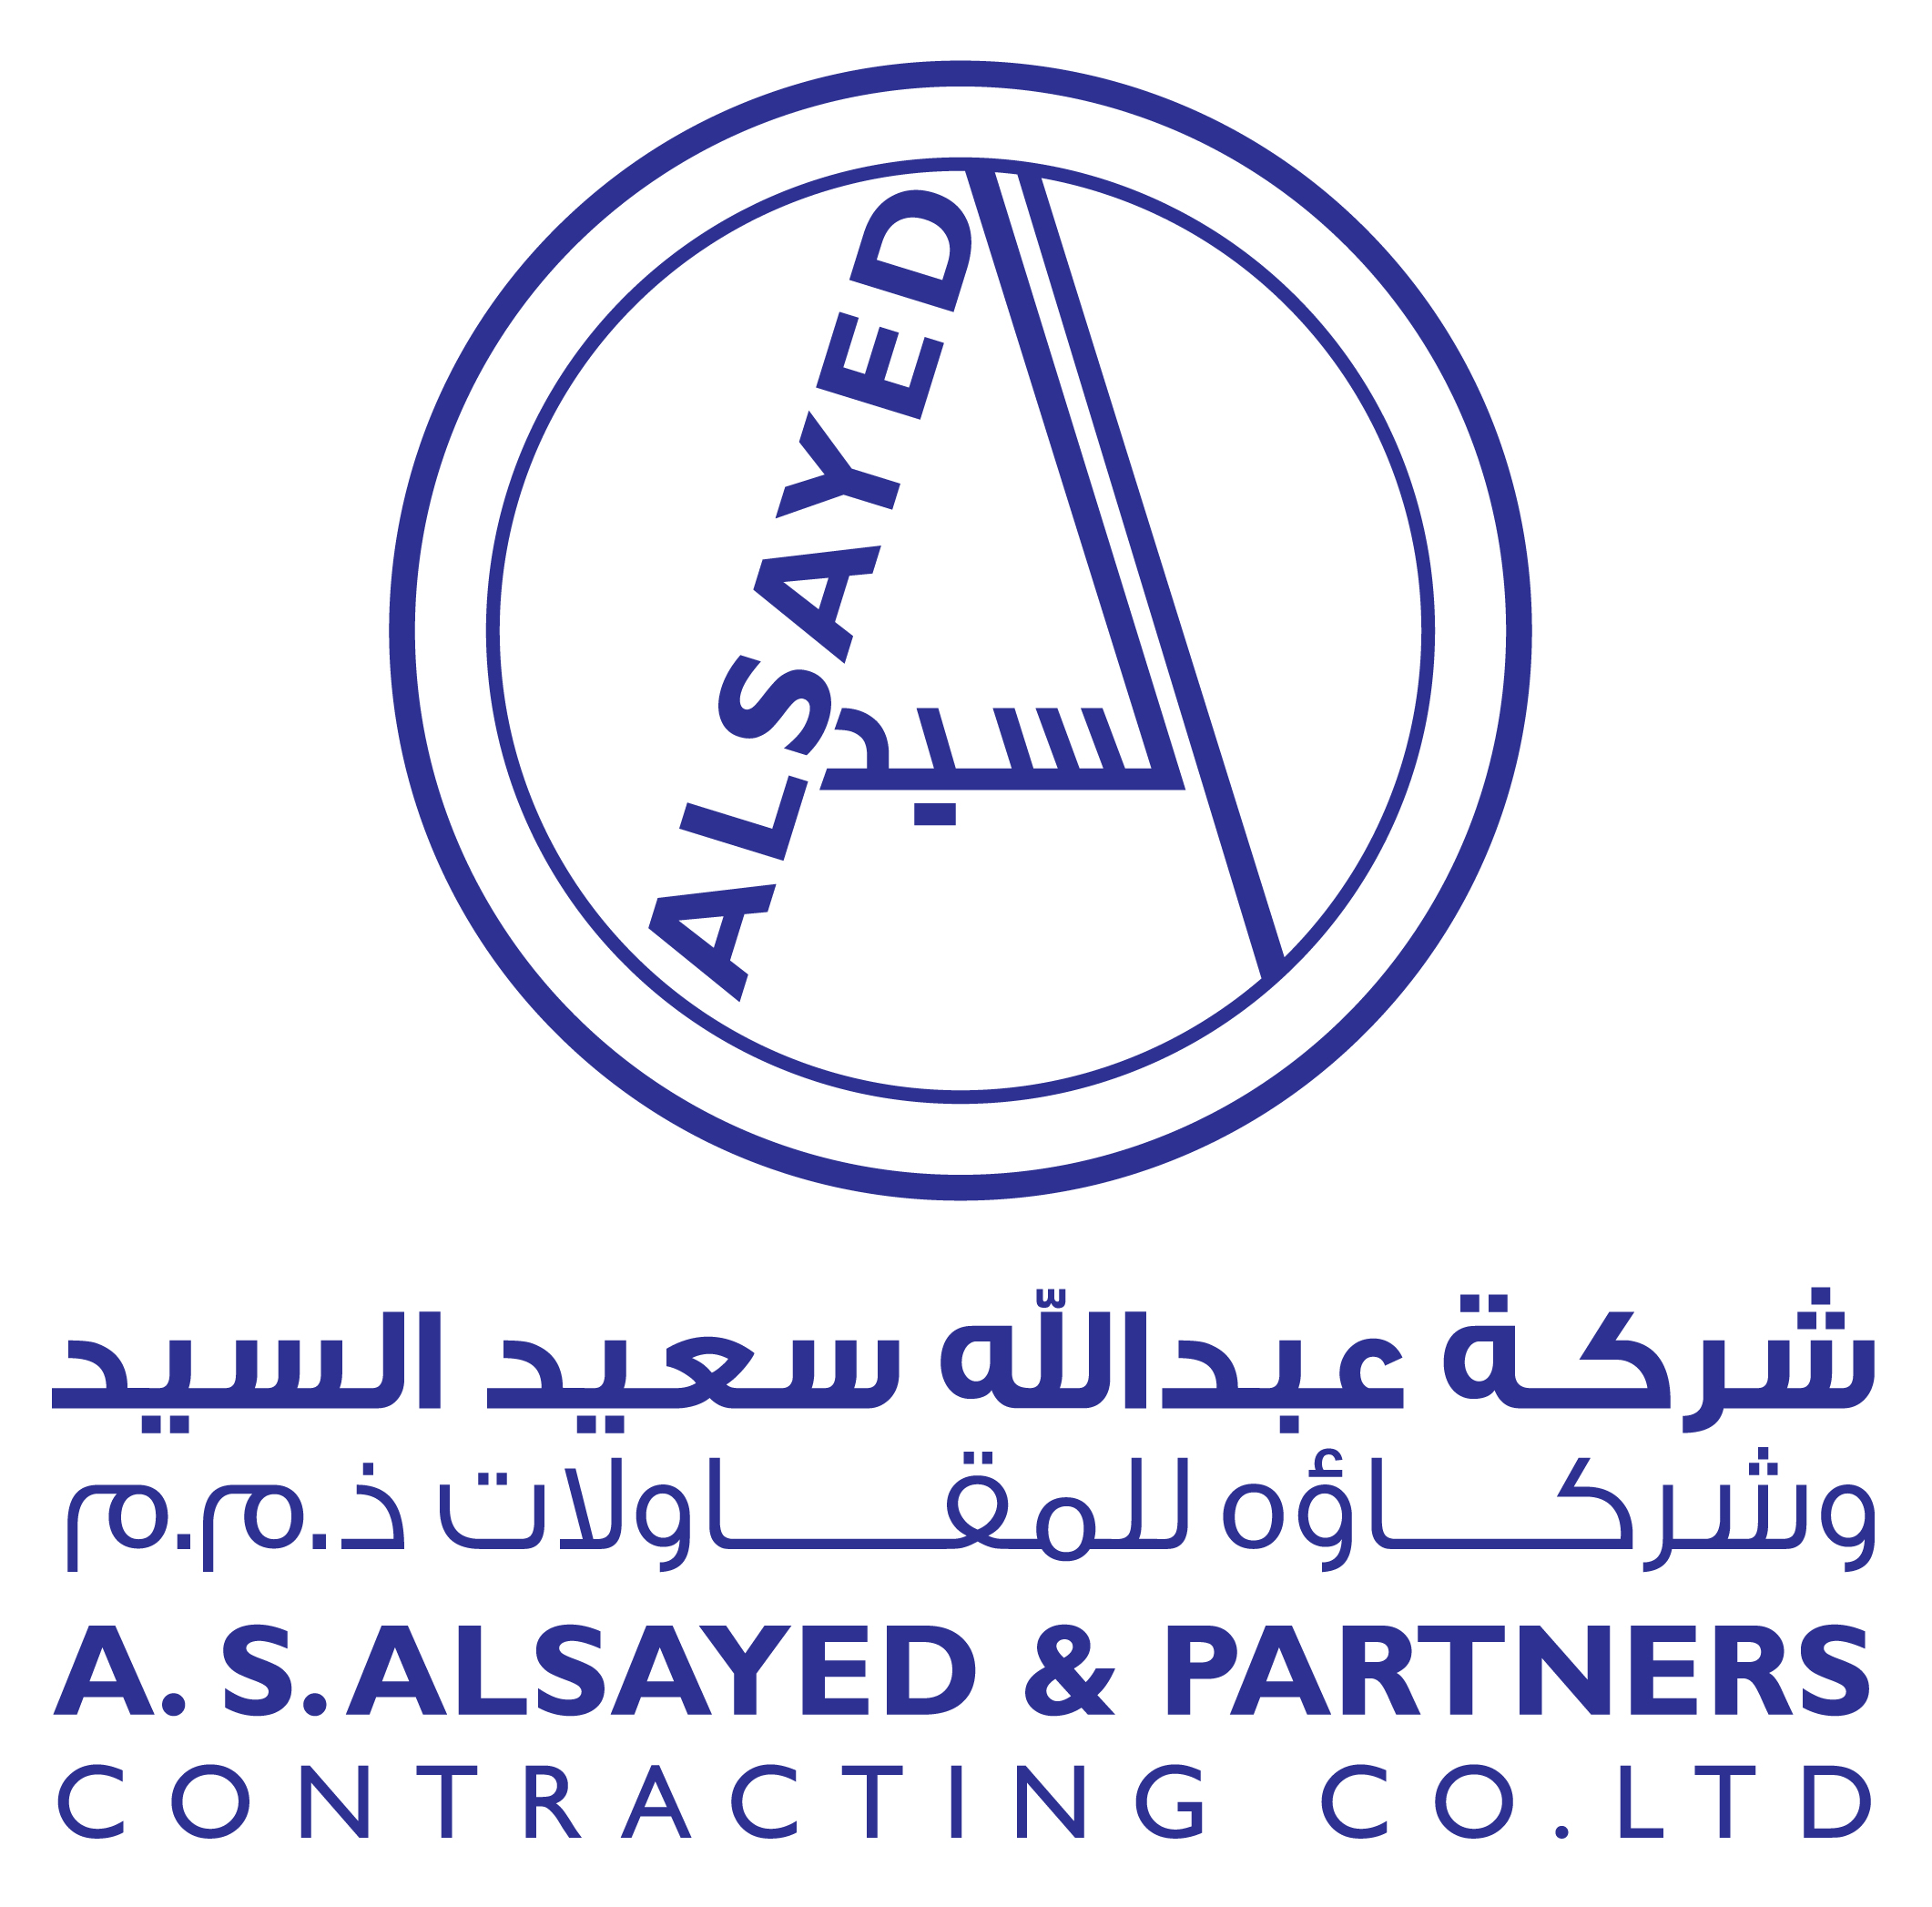 A S ALSAYED & PARTNERS Contracting co ltd